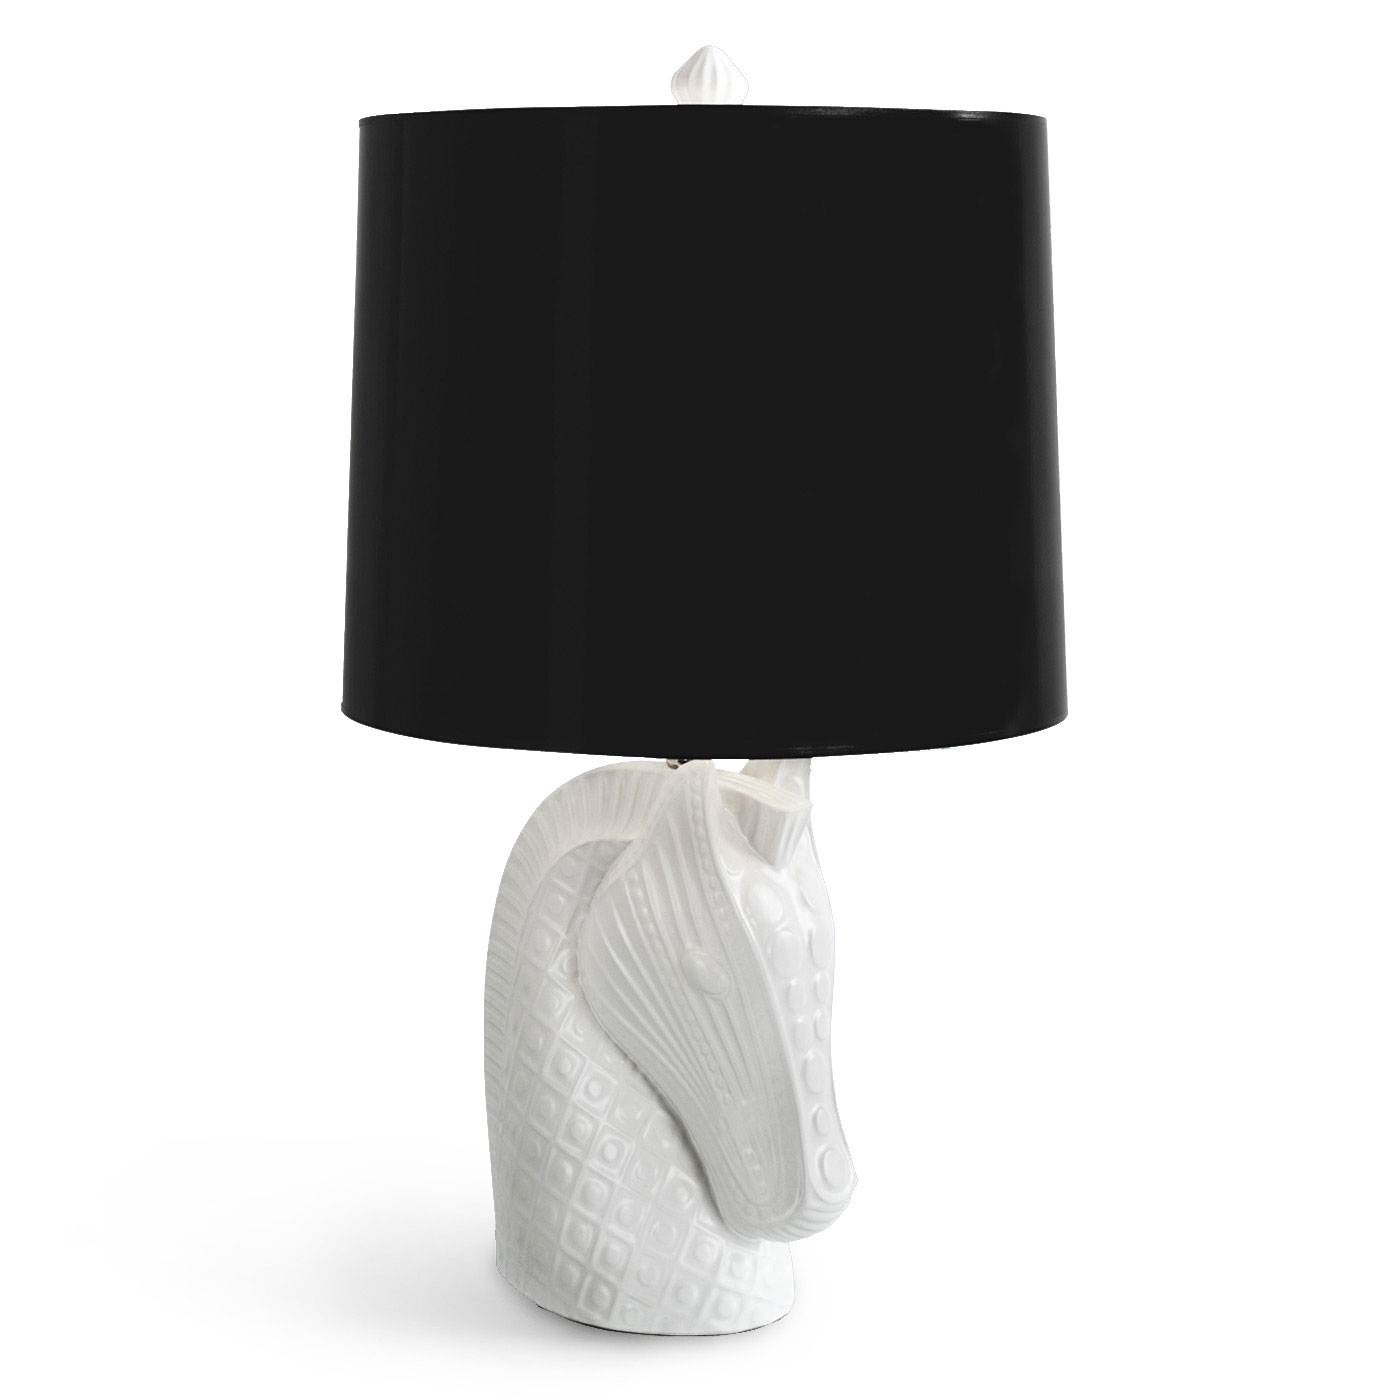 Brand-new Horse Head Table Lamp by Jonathan Adler | JA-4309 FR06